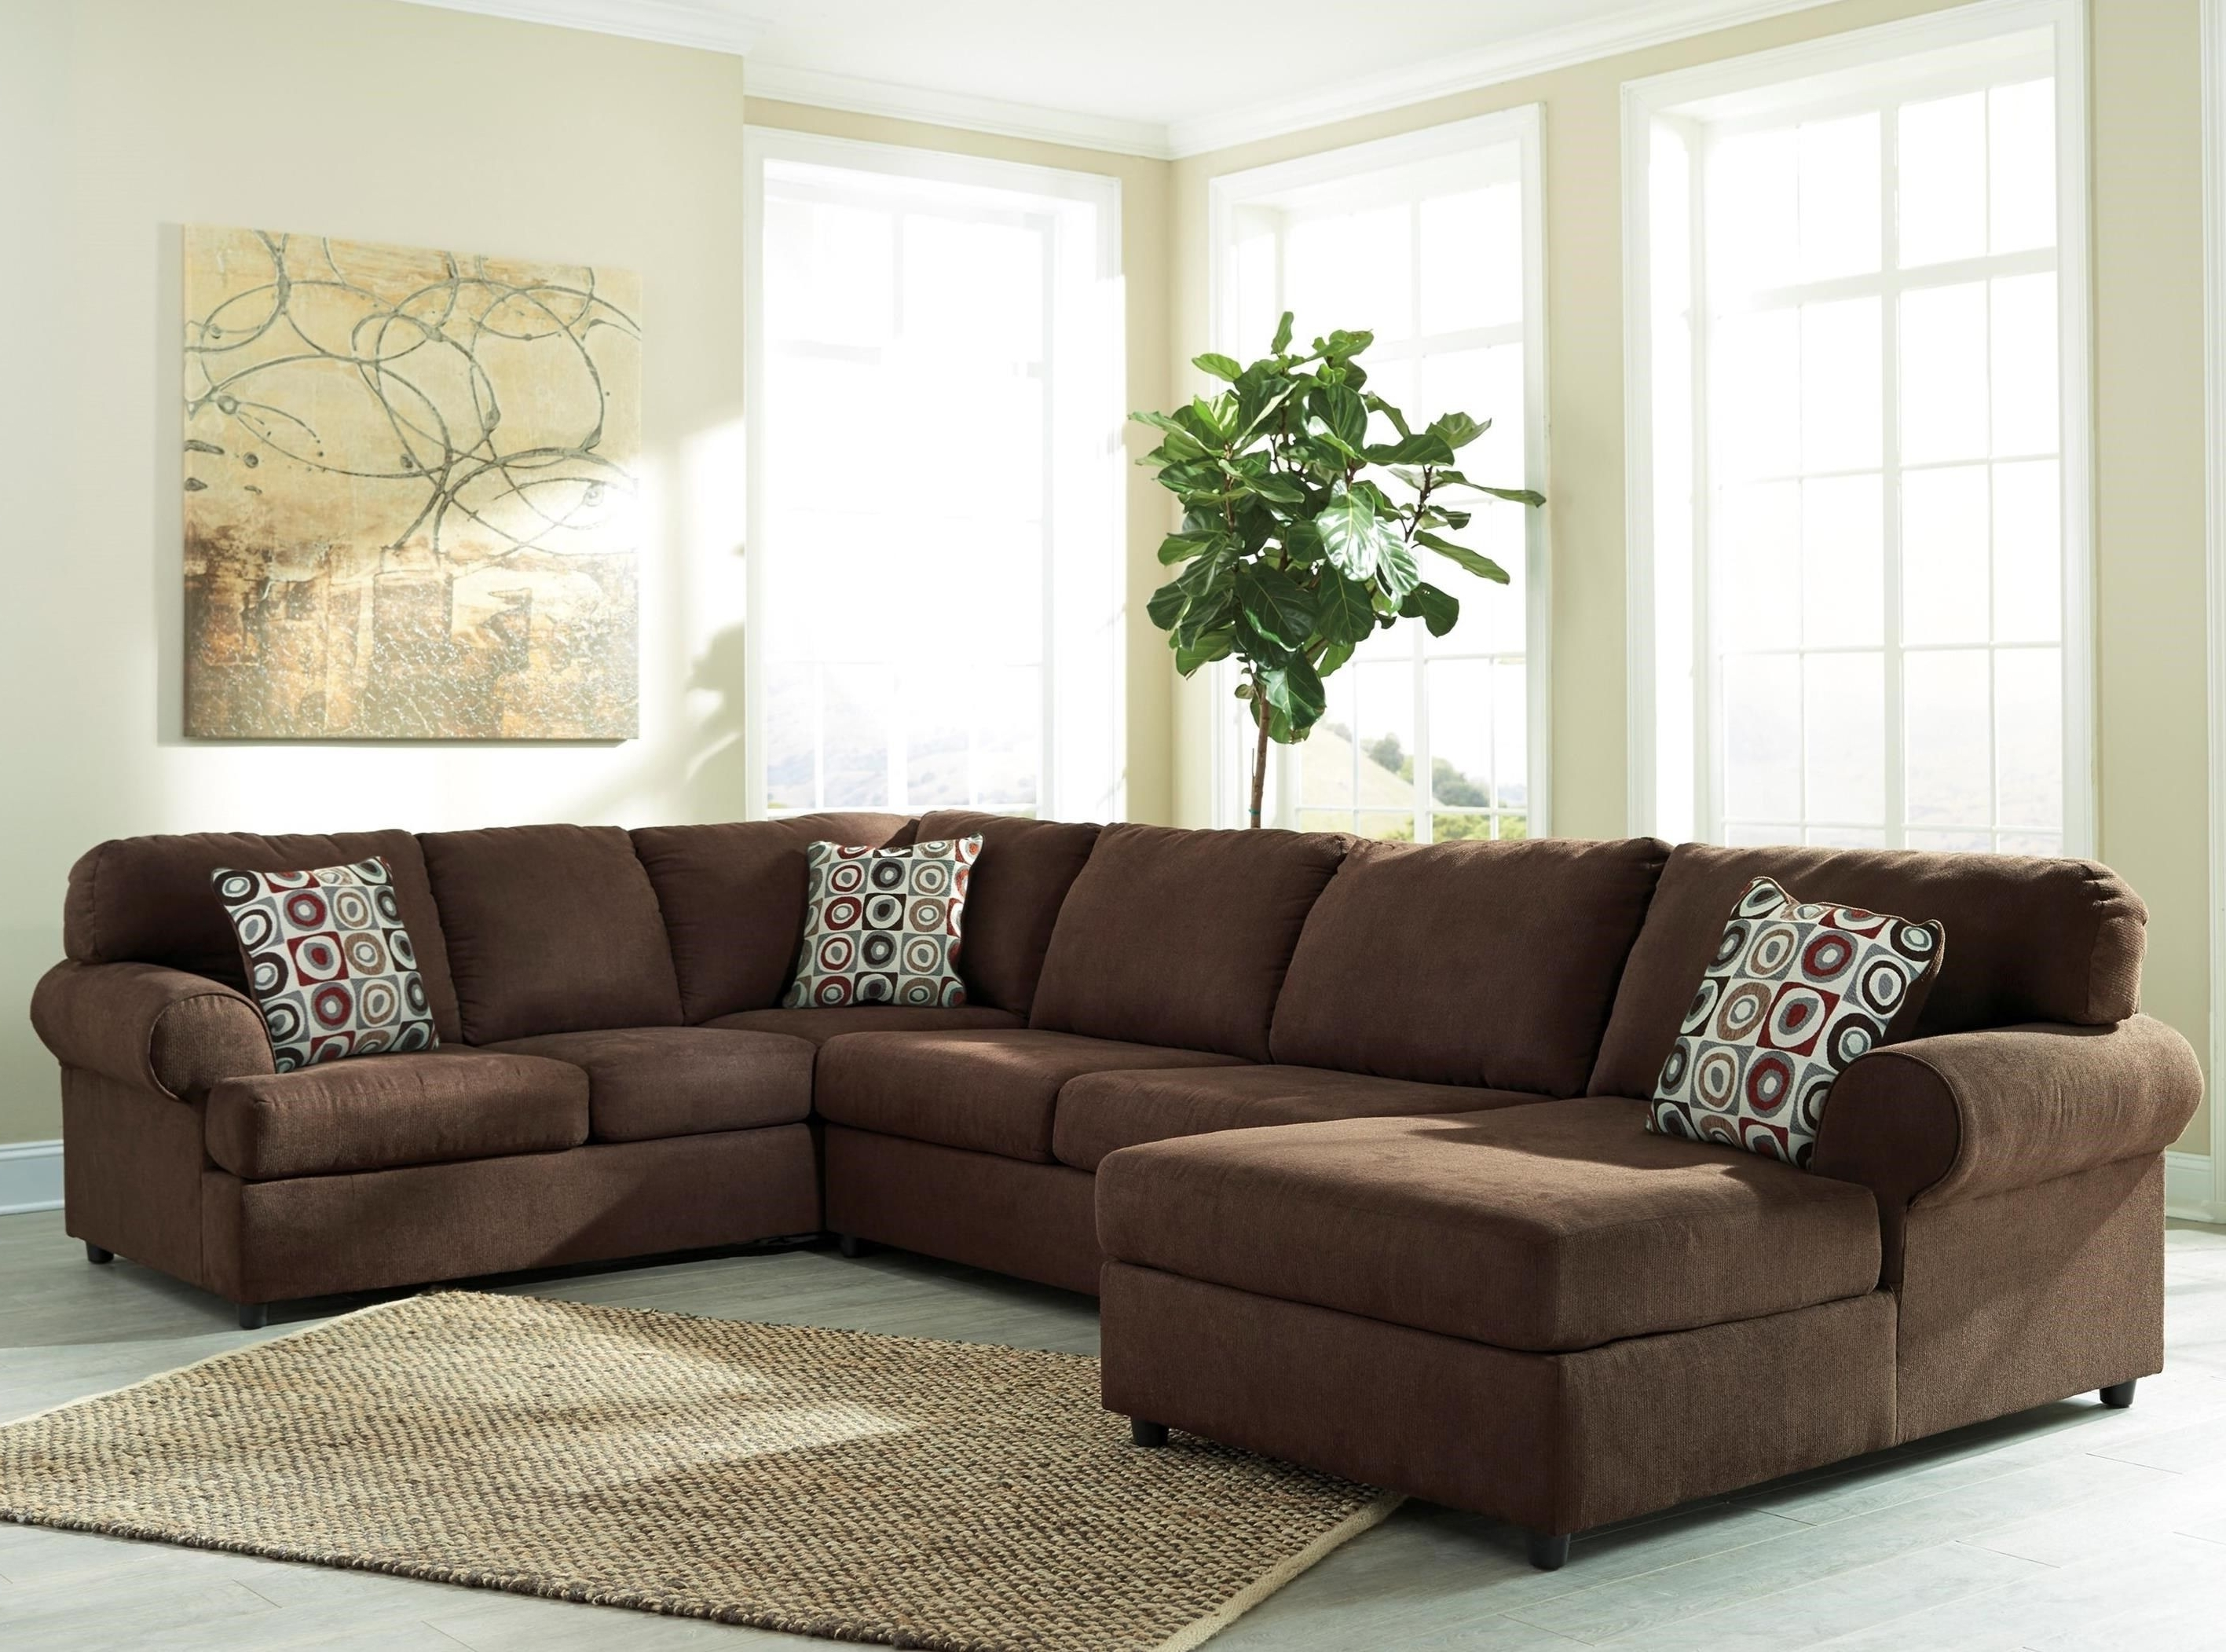 Royal Furniture Sectional Sofas Inside Most Current Jayceon 3 Piece Sectional With Left Chaisesignature Design (View 14 of 20)